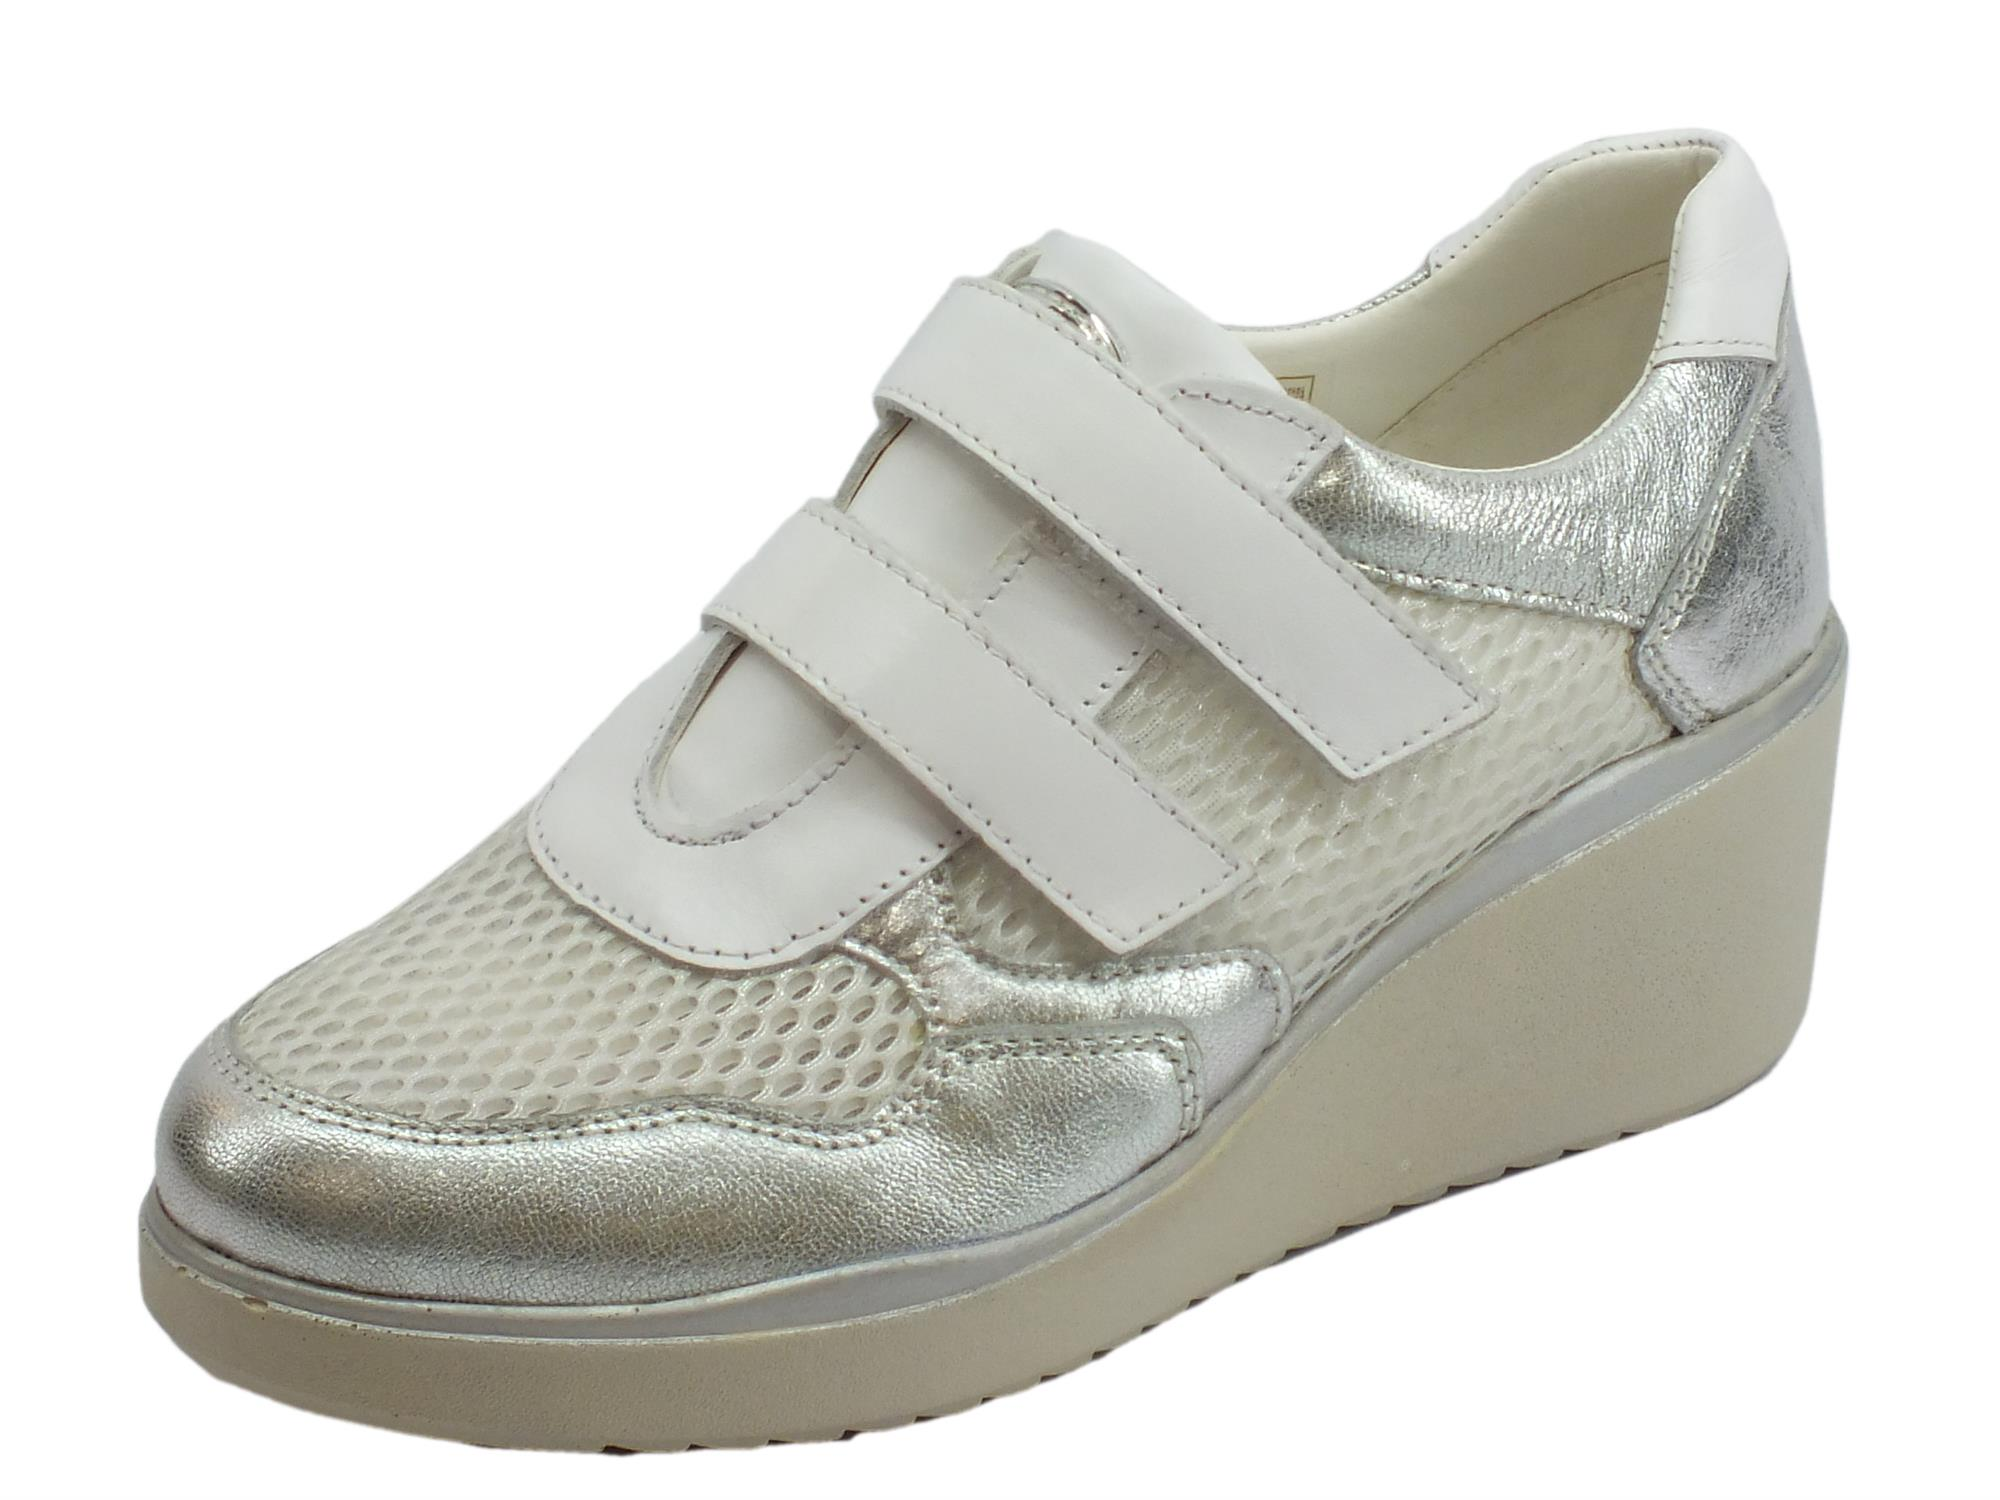 2c7343415aaf7 Cinzia Soft sneakers donna in tessuto bianco e pelle argento zeppa media